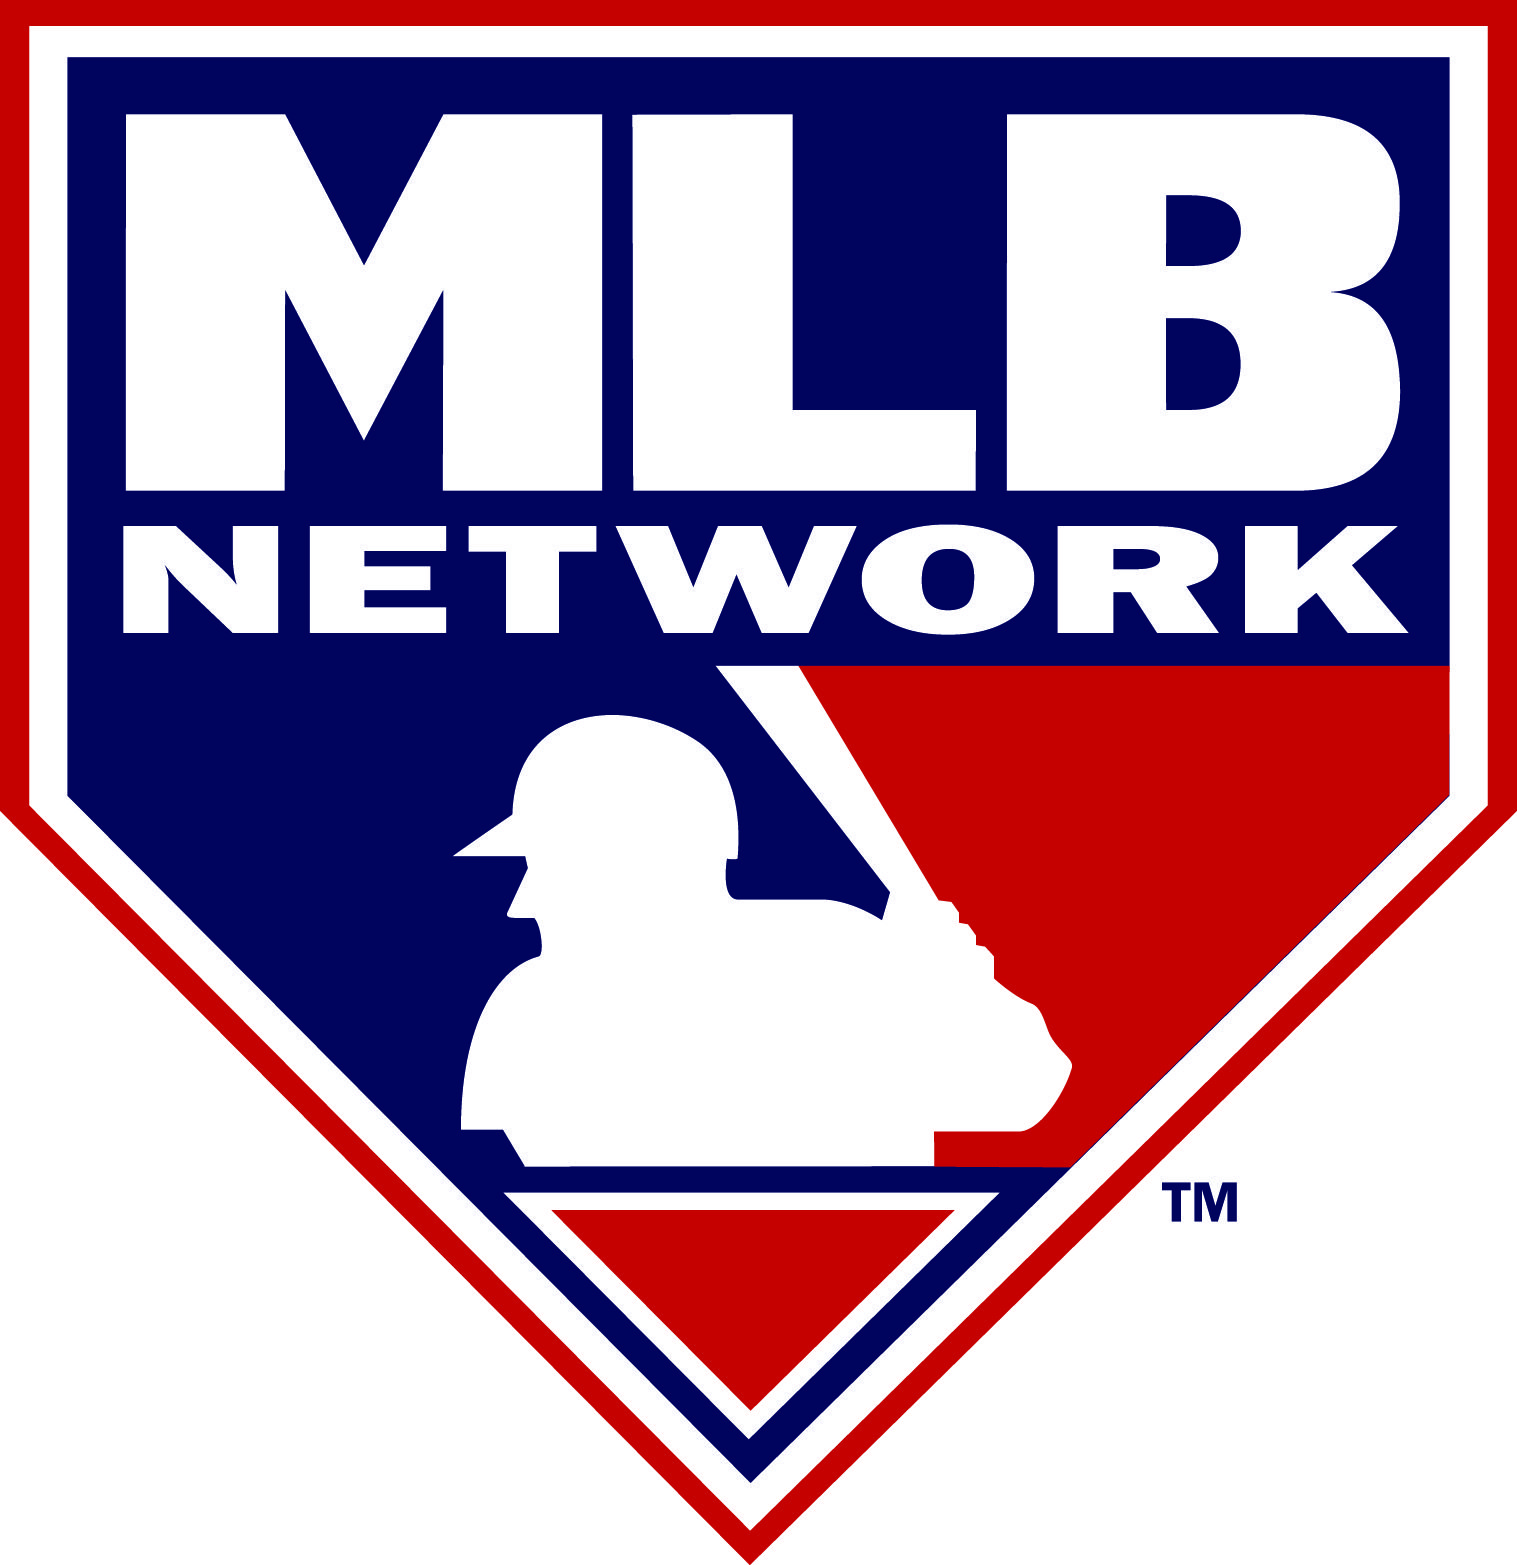 Mlb Network Mlb Mlb Team Logos Networking